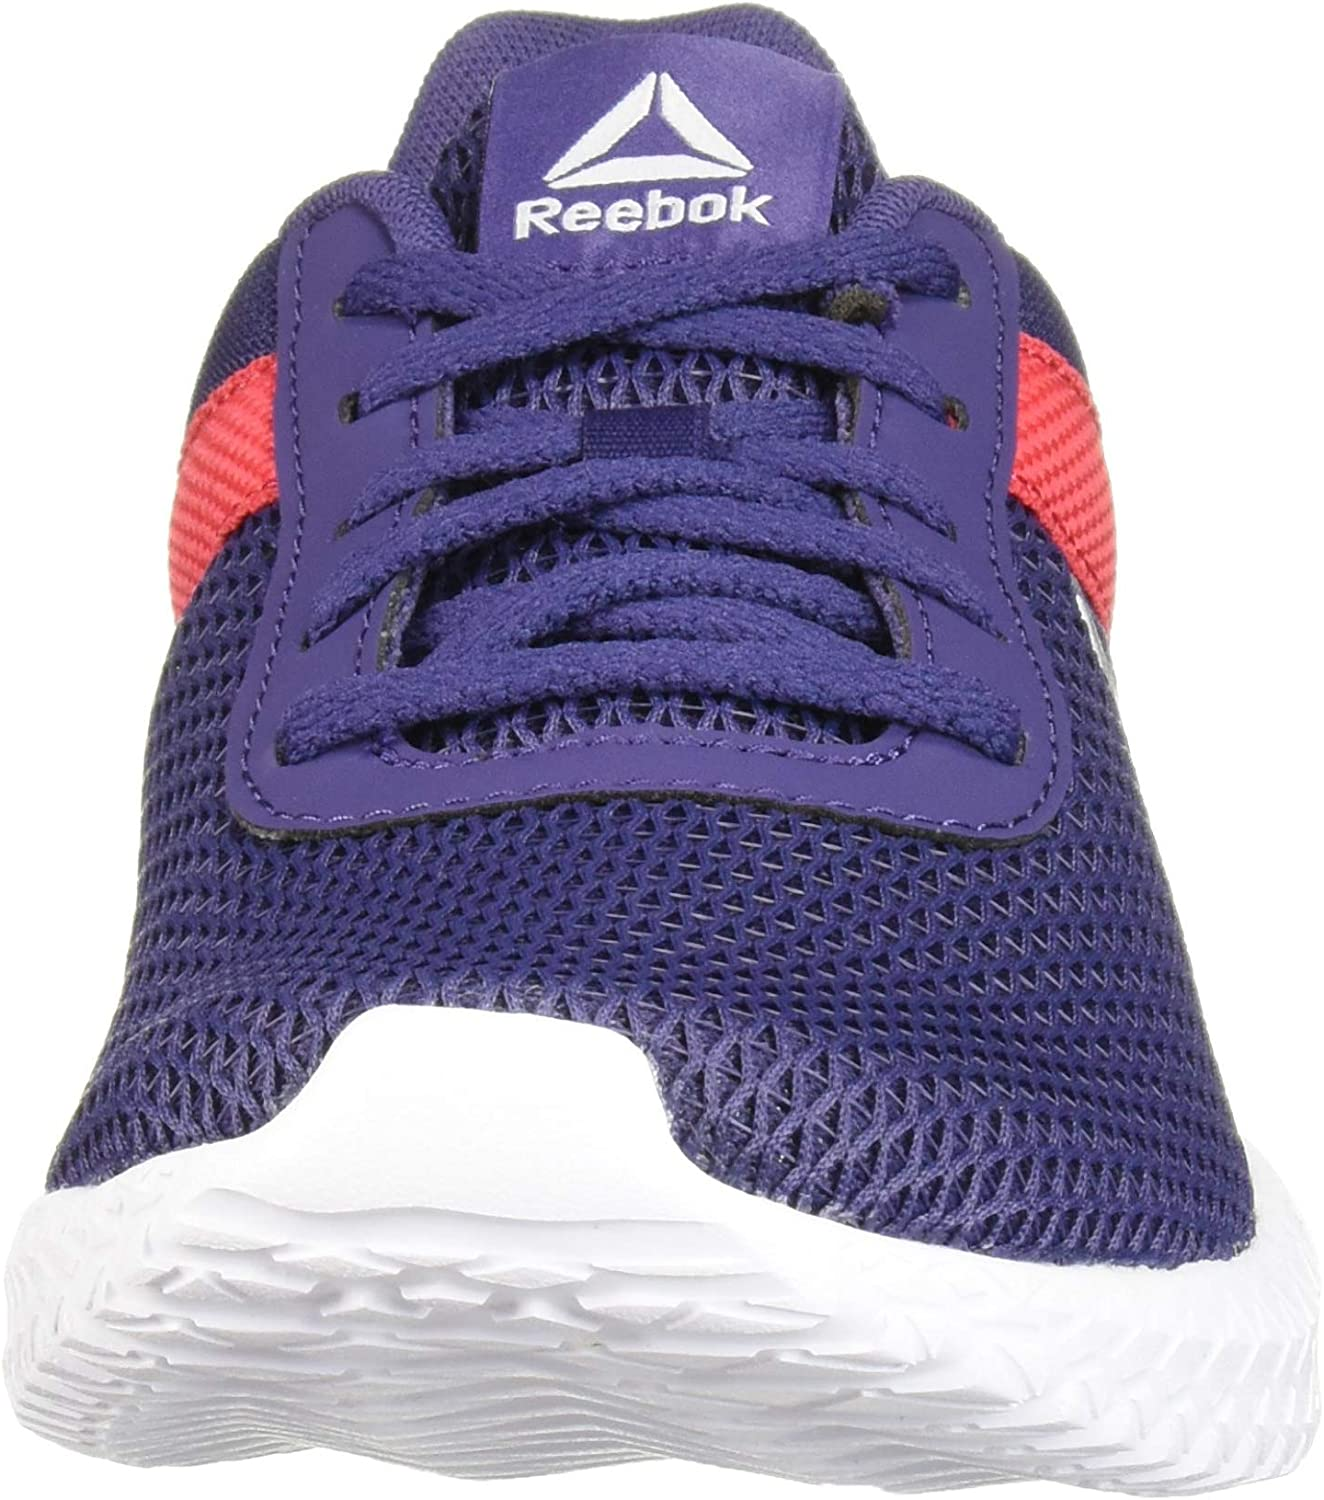 Reebok Womens Flexagon Energy Tr Cross Trainer